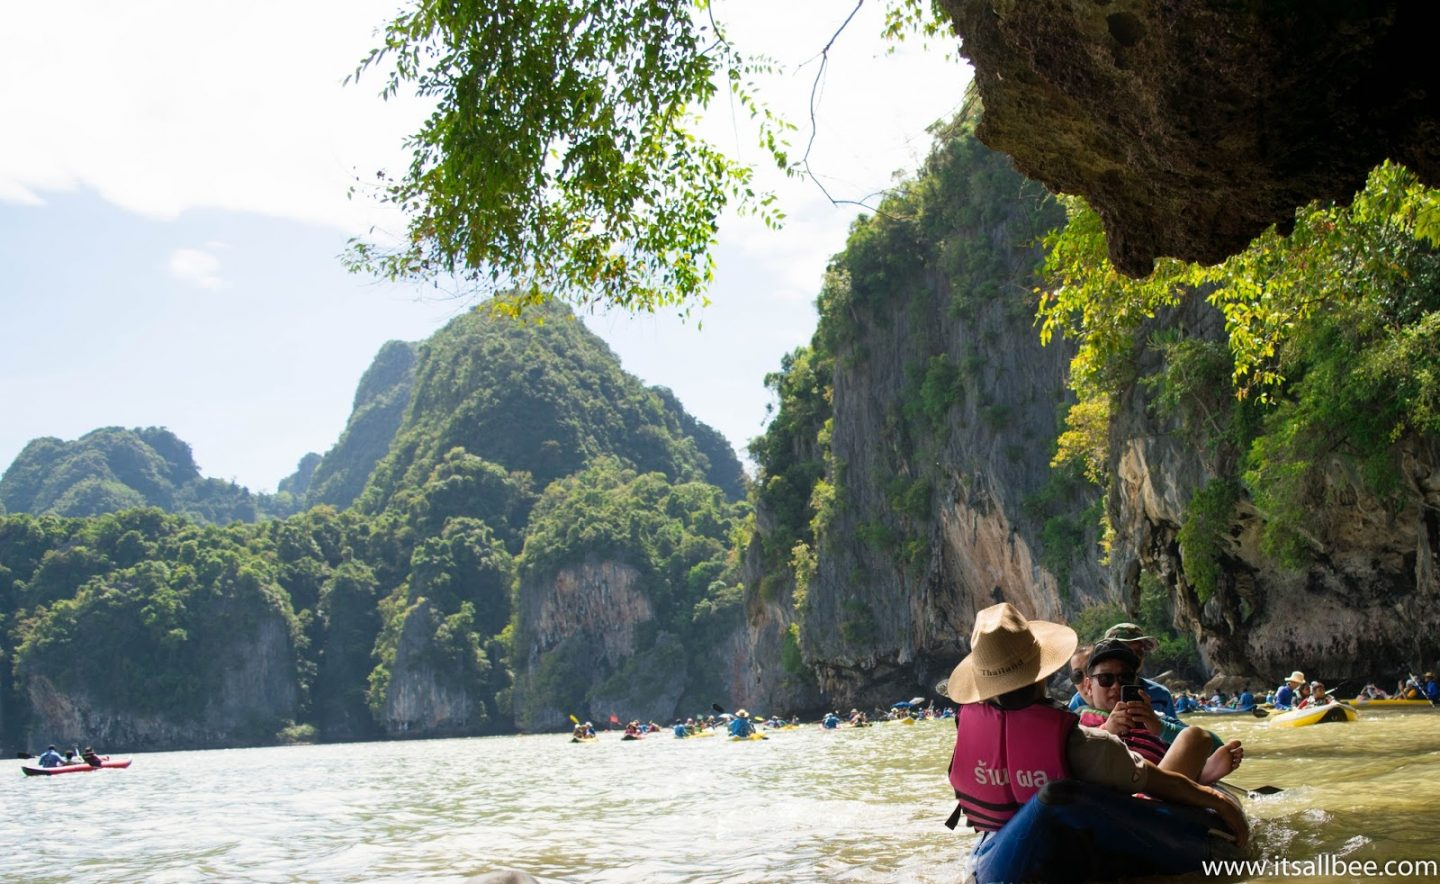 An Epic Phuket Itinerary For Island-Hopping Adventures & Beach Bumming - The perfect 5 days Phuket itinerary also perfect for those looking for things to do in Phuket in 3 days or places to visit in phuket in 4 days. Everything you need to know on what to do in Phuket for a week. #Hotels #Tours #Eating #kohphiphi #PhangNgaBay #Patong #nightlife #oldtown #beaches #vacation #thailand #daytrips #packingtips #sunshine #mayaba